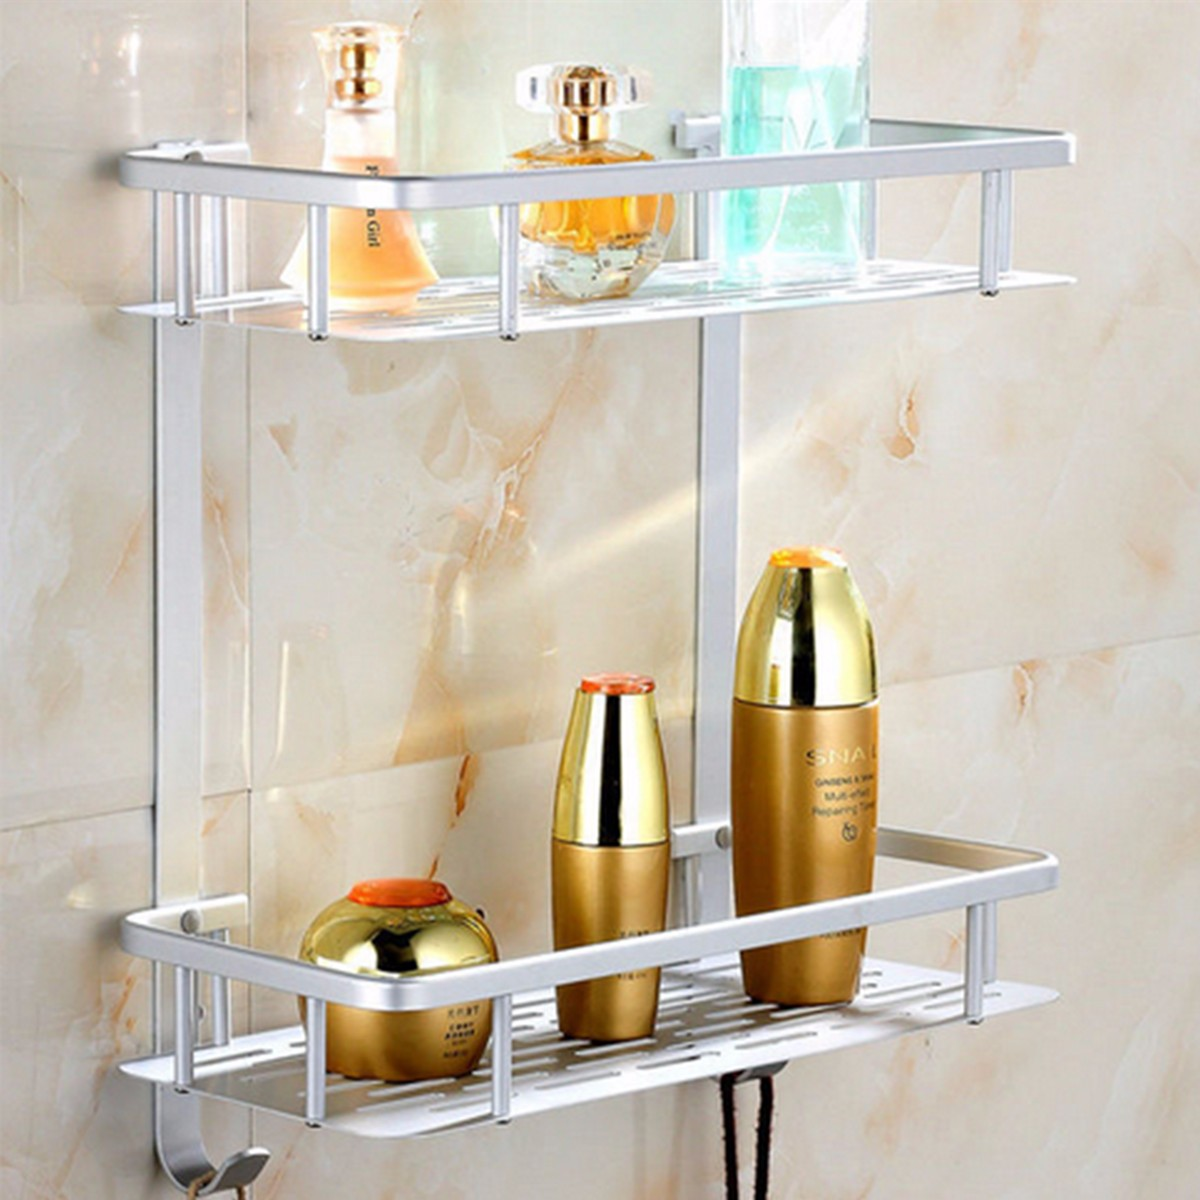 1/2/3 Tiers Aluminium Bathroom Shower Bath Holder Multifunctional Alumimum Shelf Bathroom Rack Utility Storage Organizer Holder